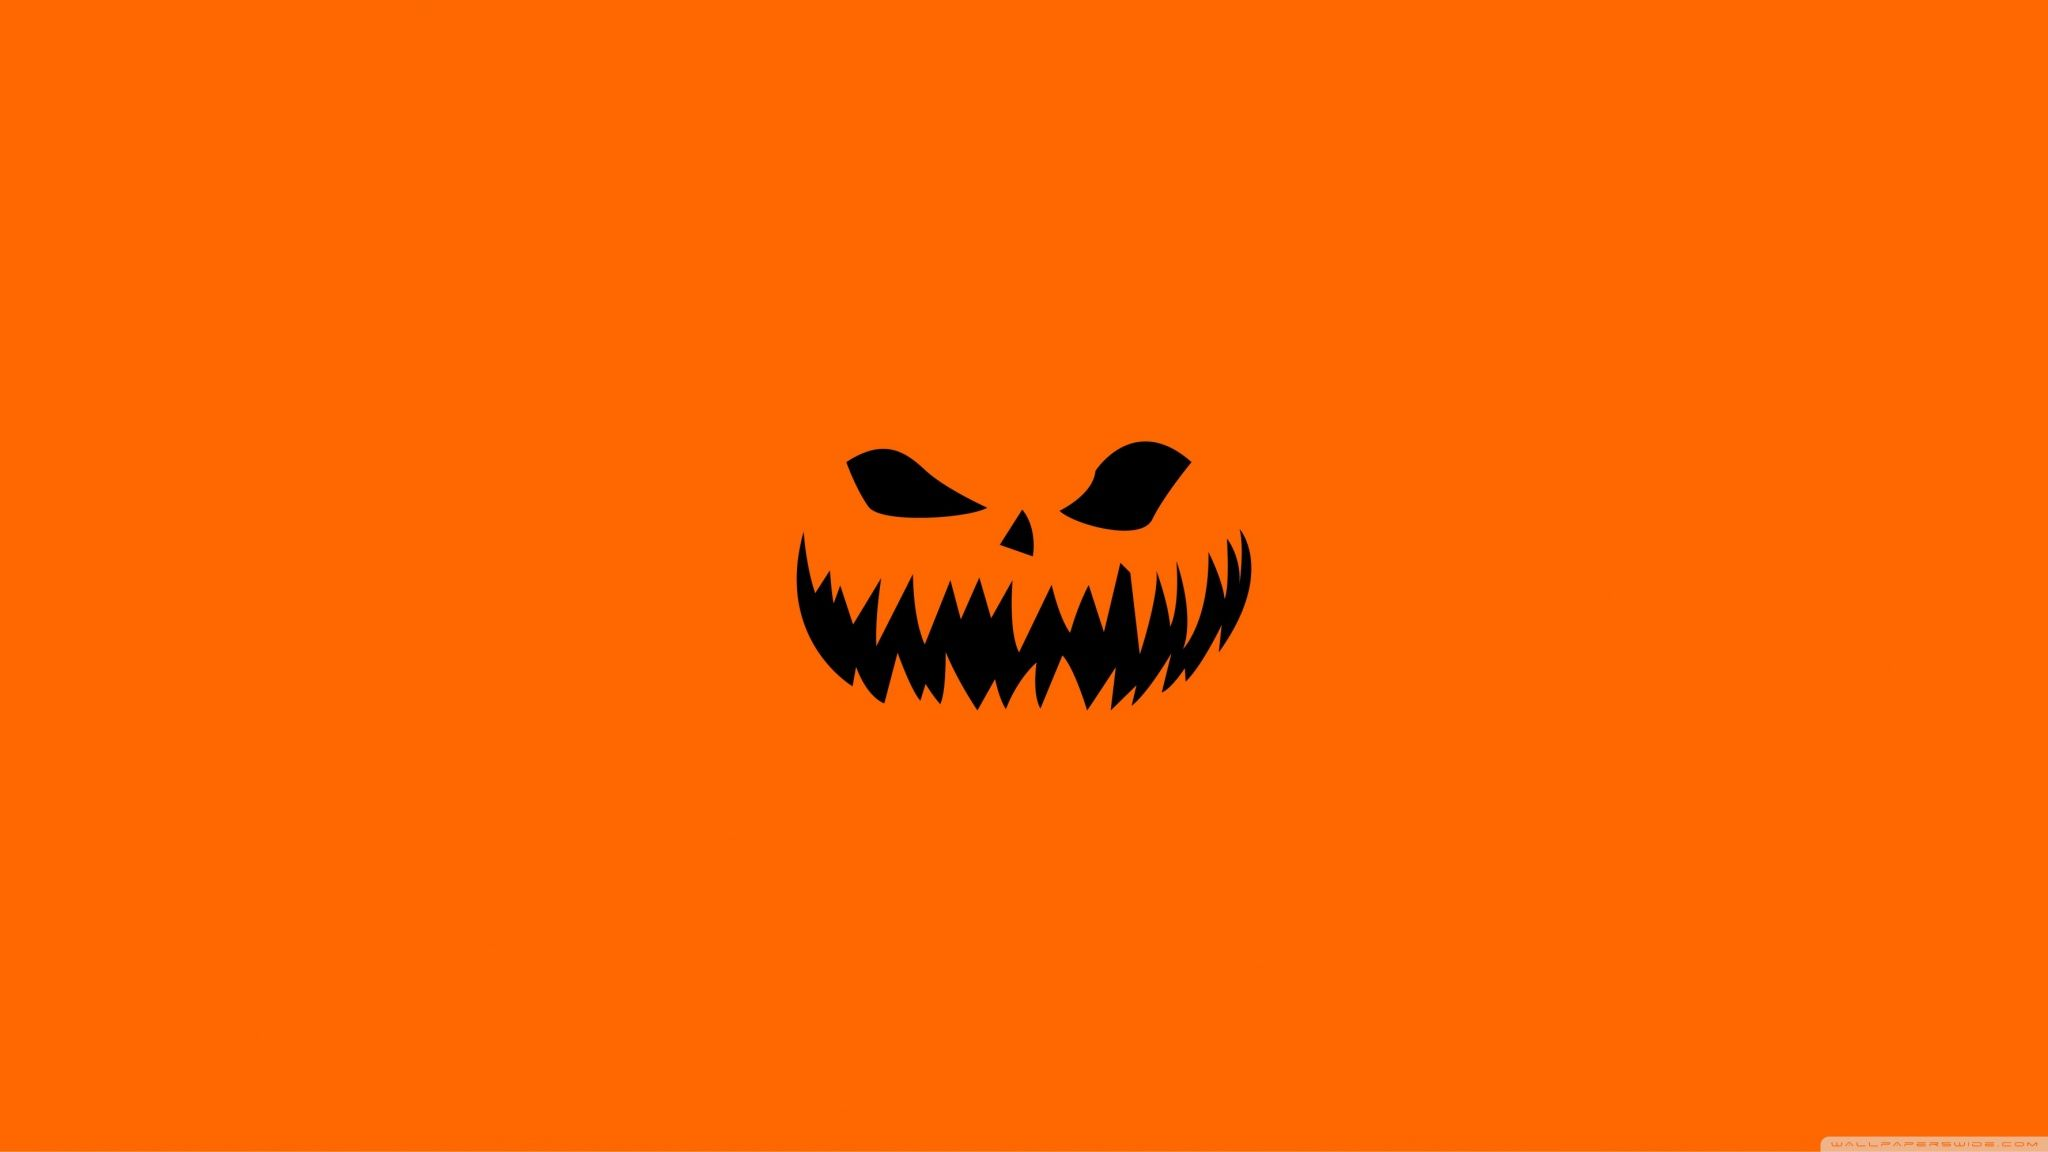 2048x1152 Scary Halloween Face on Orange Background Wallpapers ...